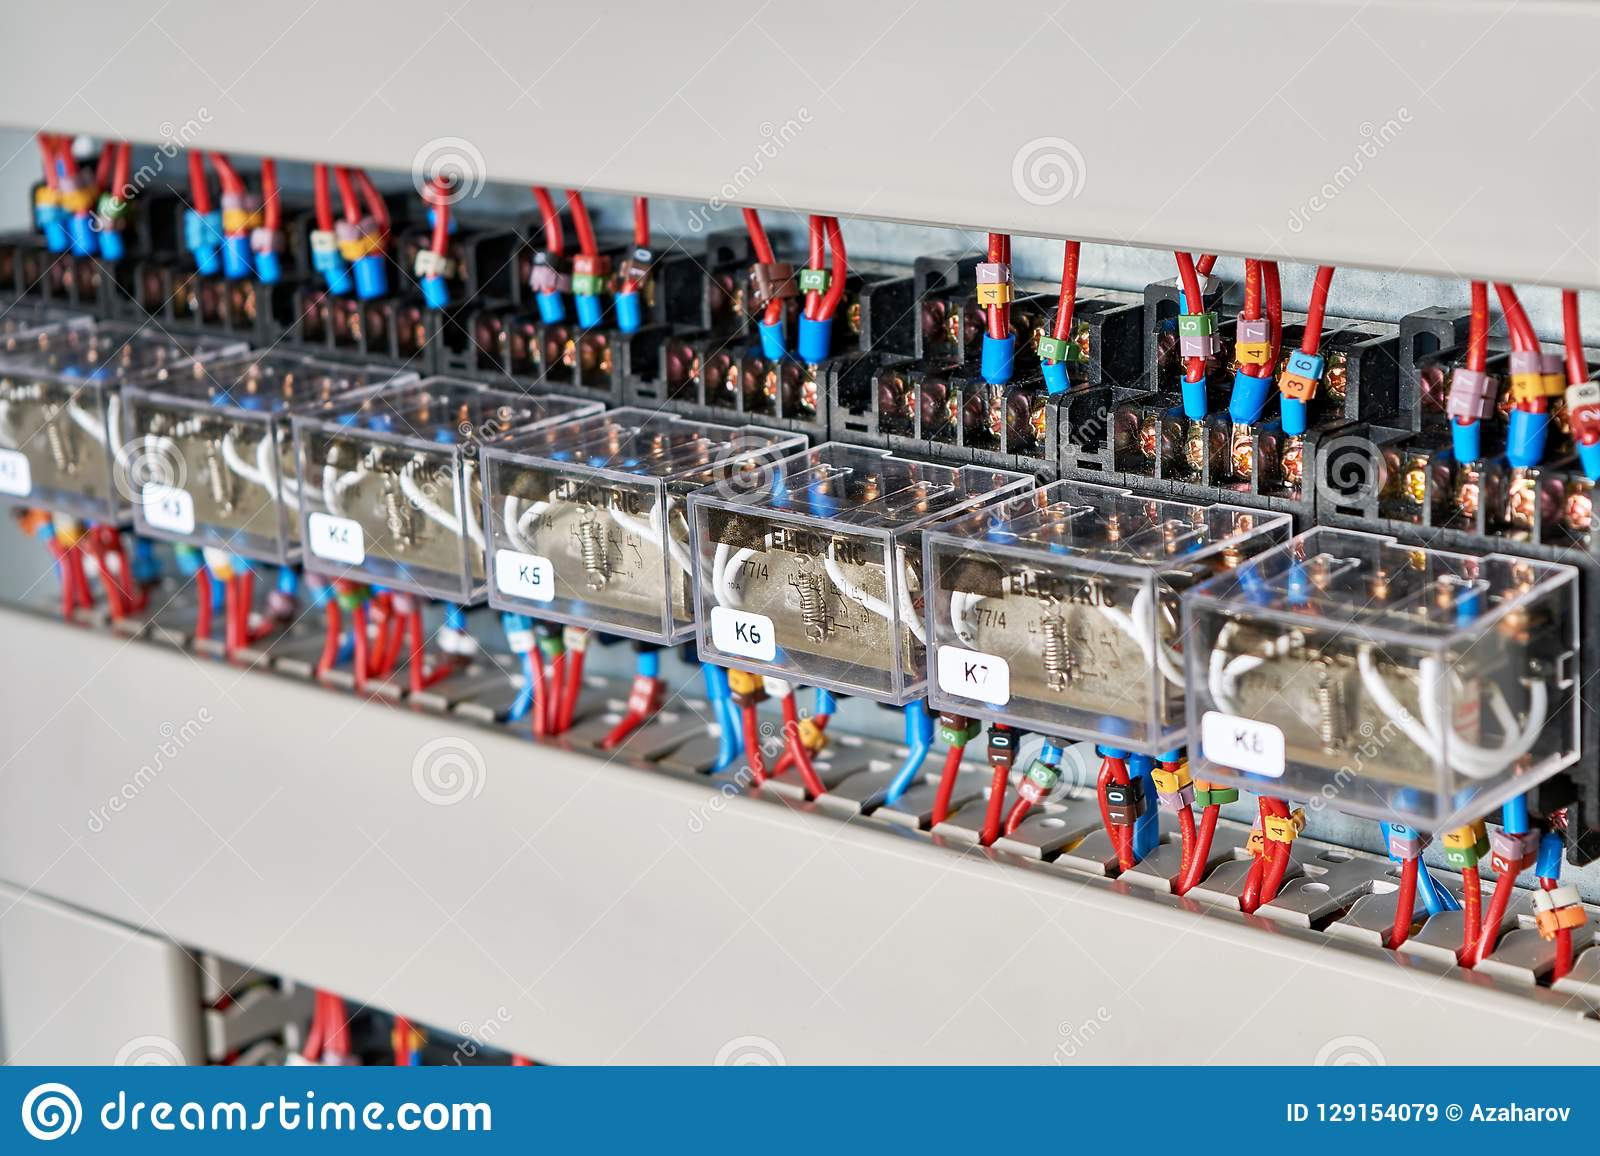 A Range Of Electrical Intermediate Relays In An Electrical